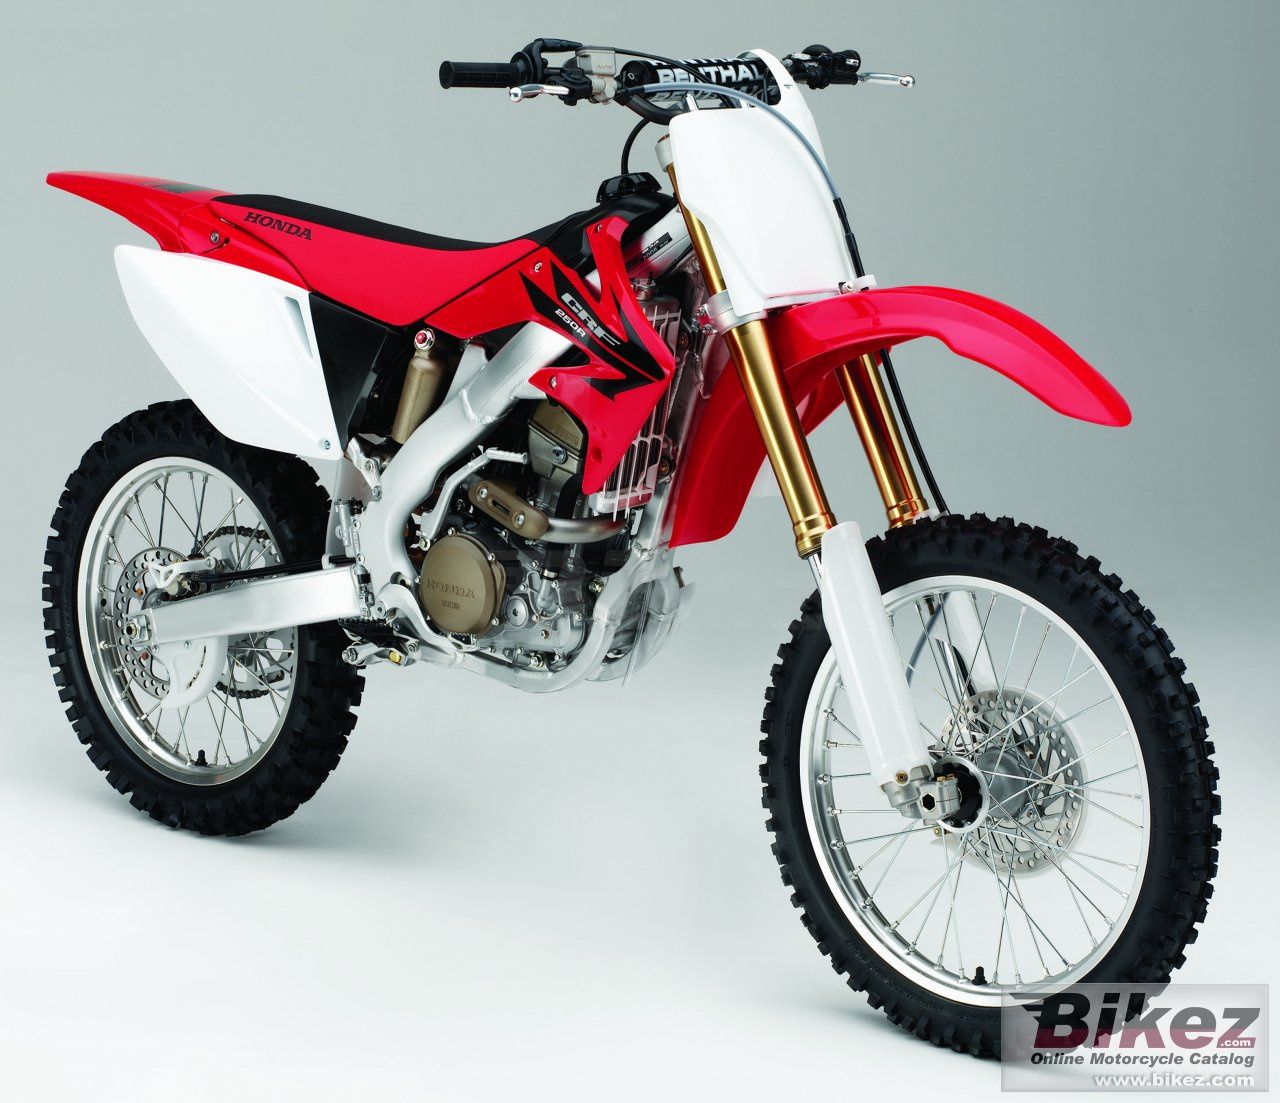 Big Honda cr 125 r picture and wallpaper from Bikez.com